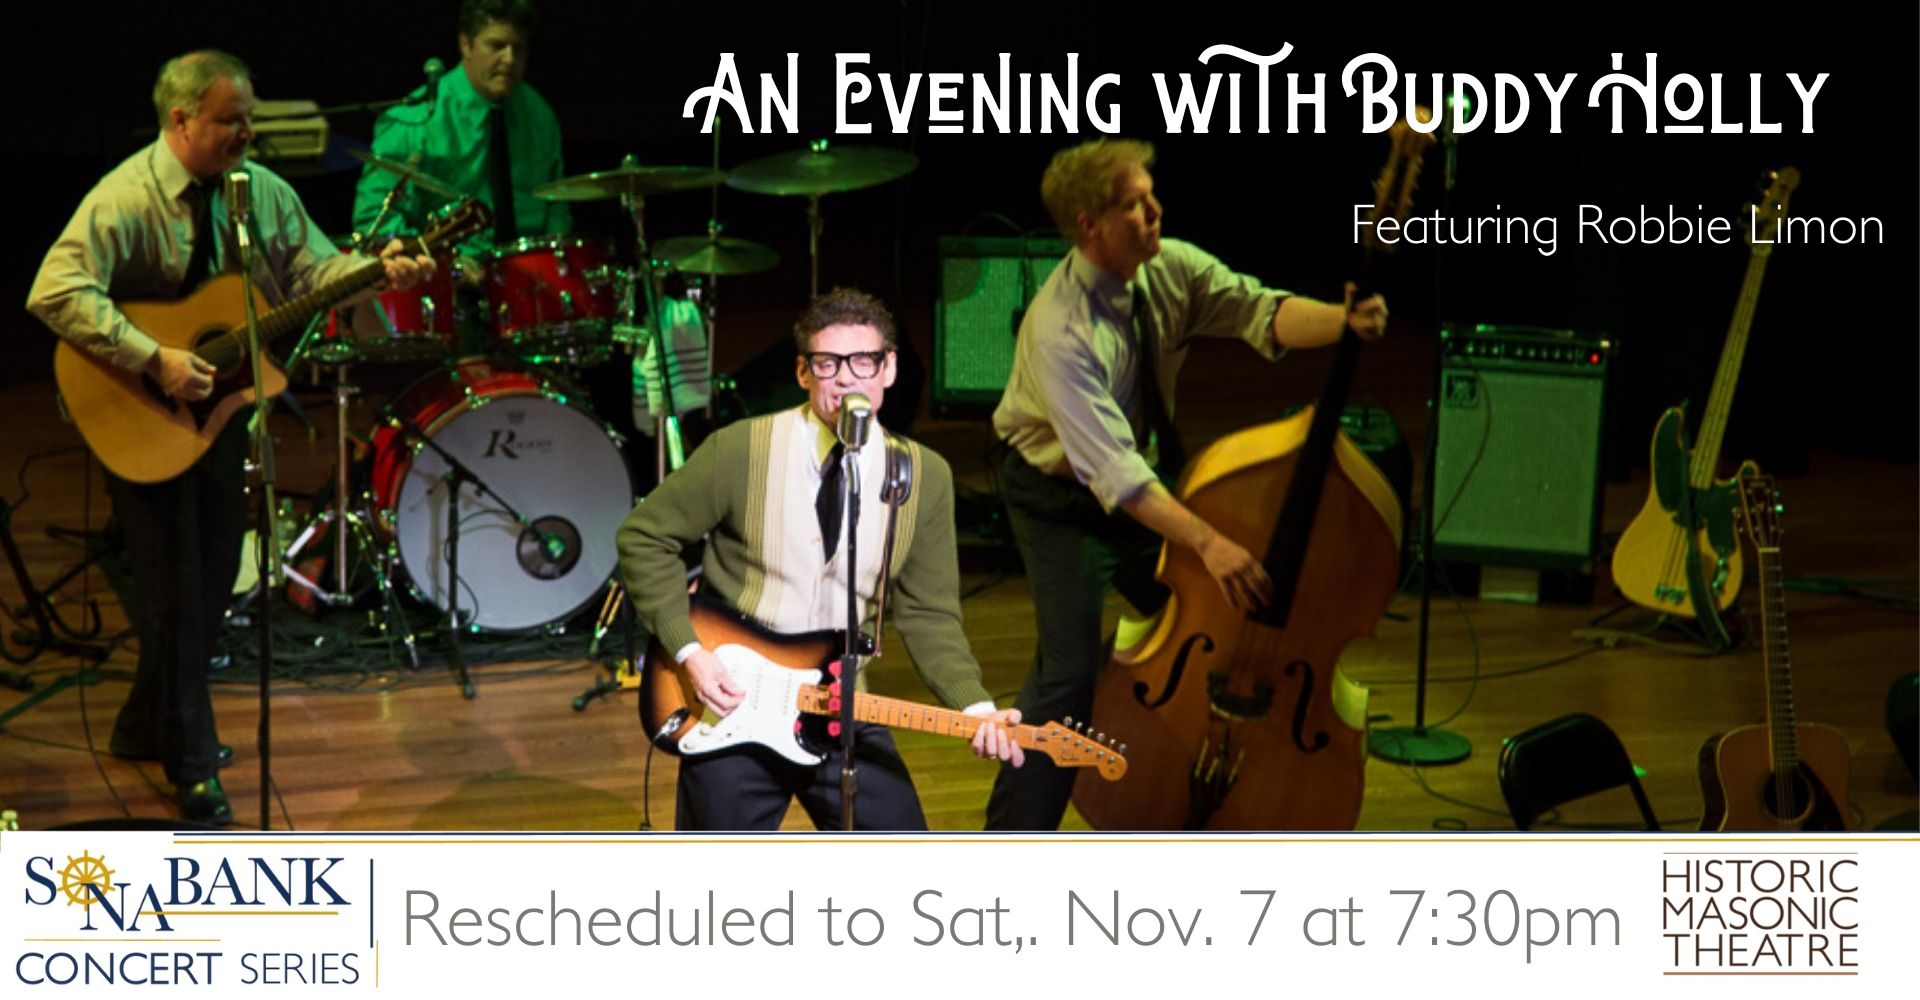 An Evening with Buddy Holly 2020 Nov 7